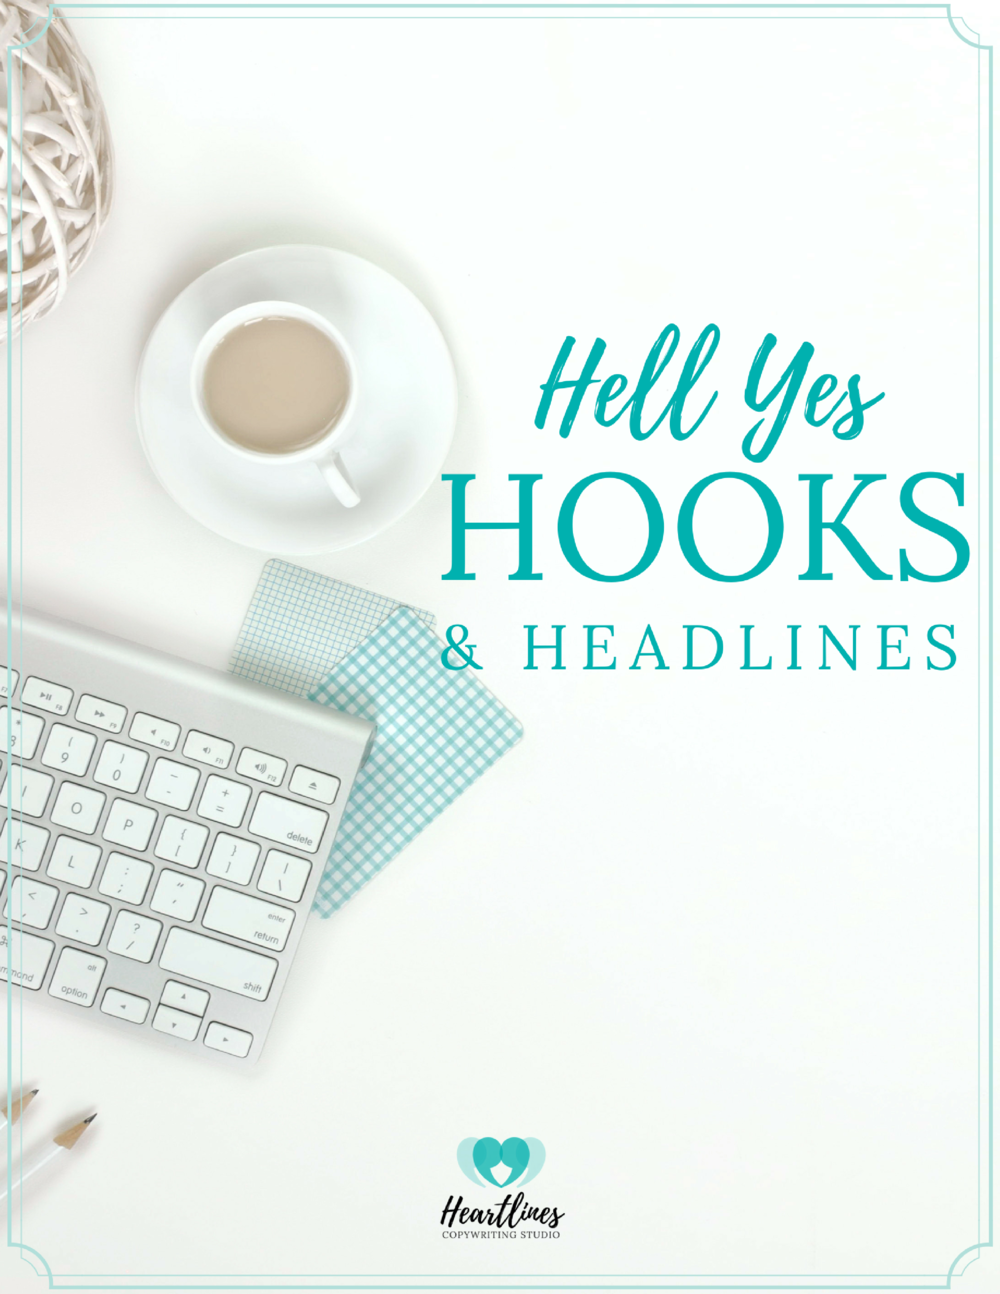 FREE GUIDE      Hell Yes Hooks & Headlines    will help you ditch the formulas and learn the 3 step process to writing creative, compelling headlines & hooks to help you get seen.